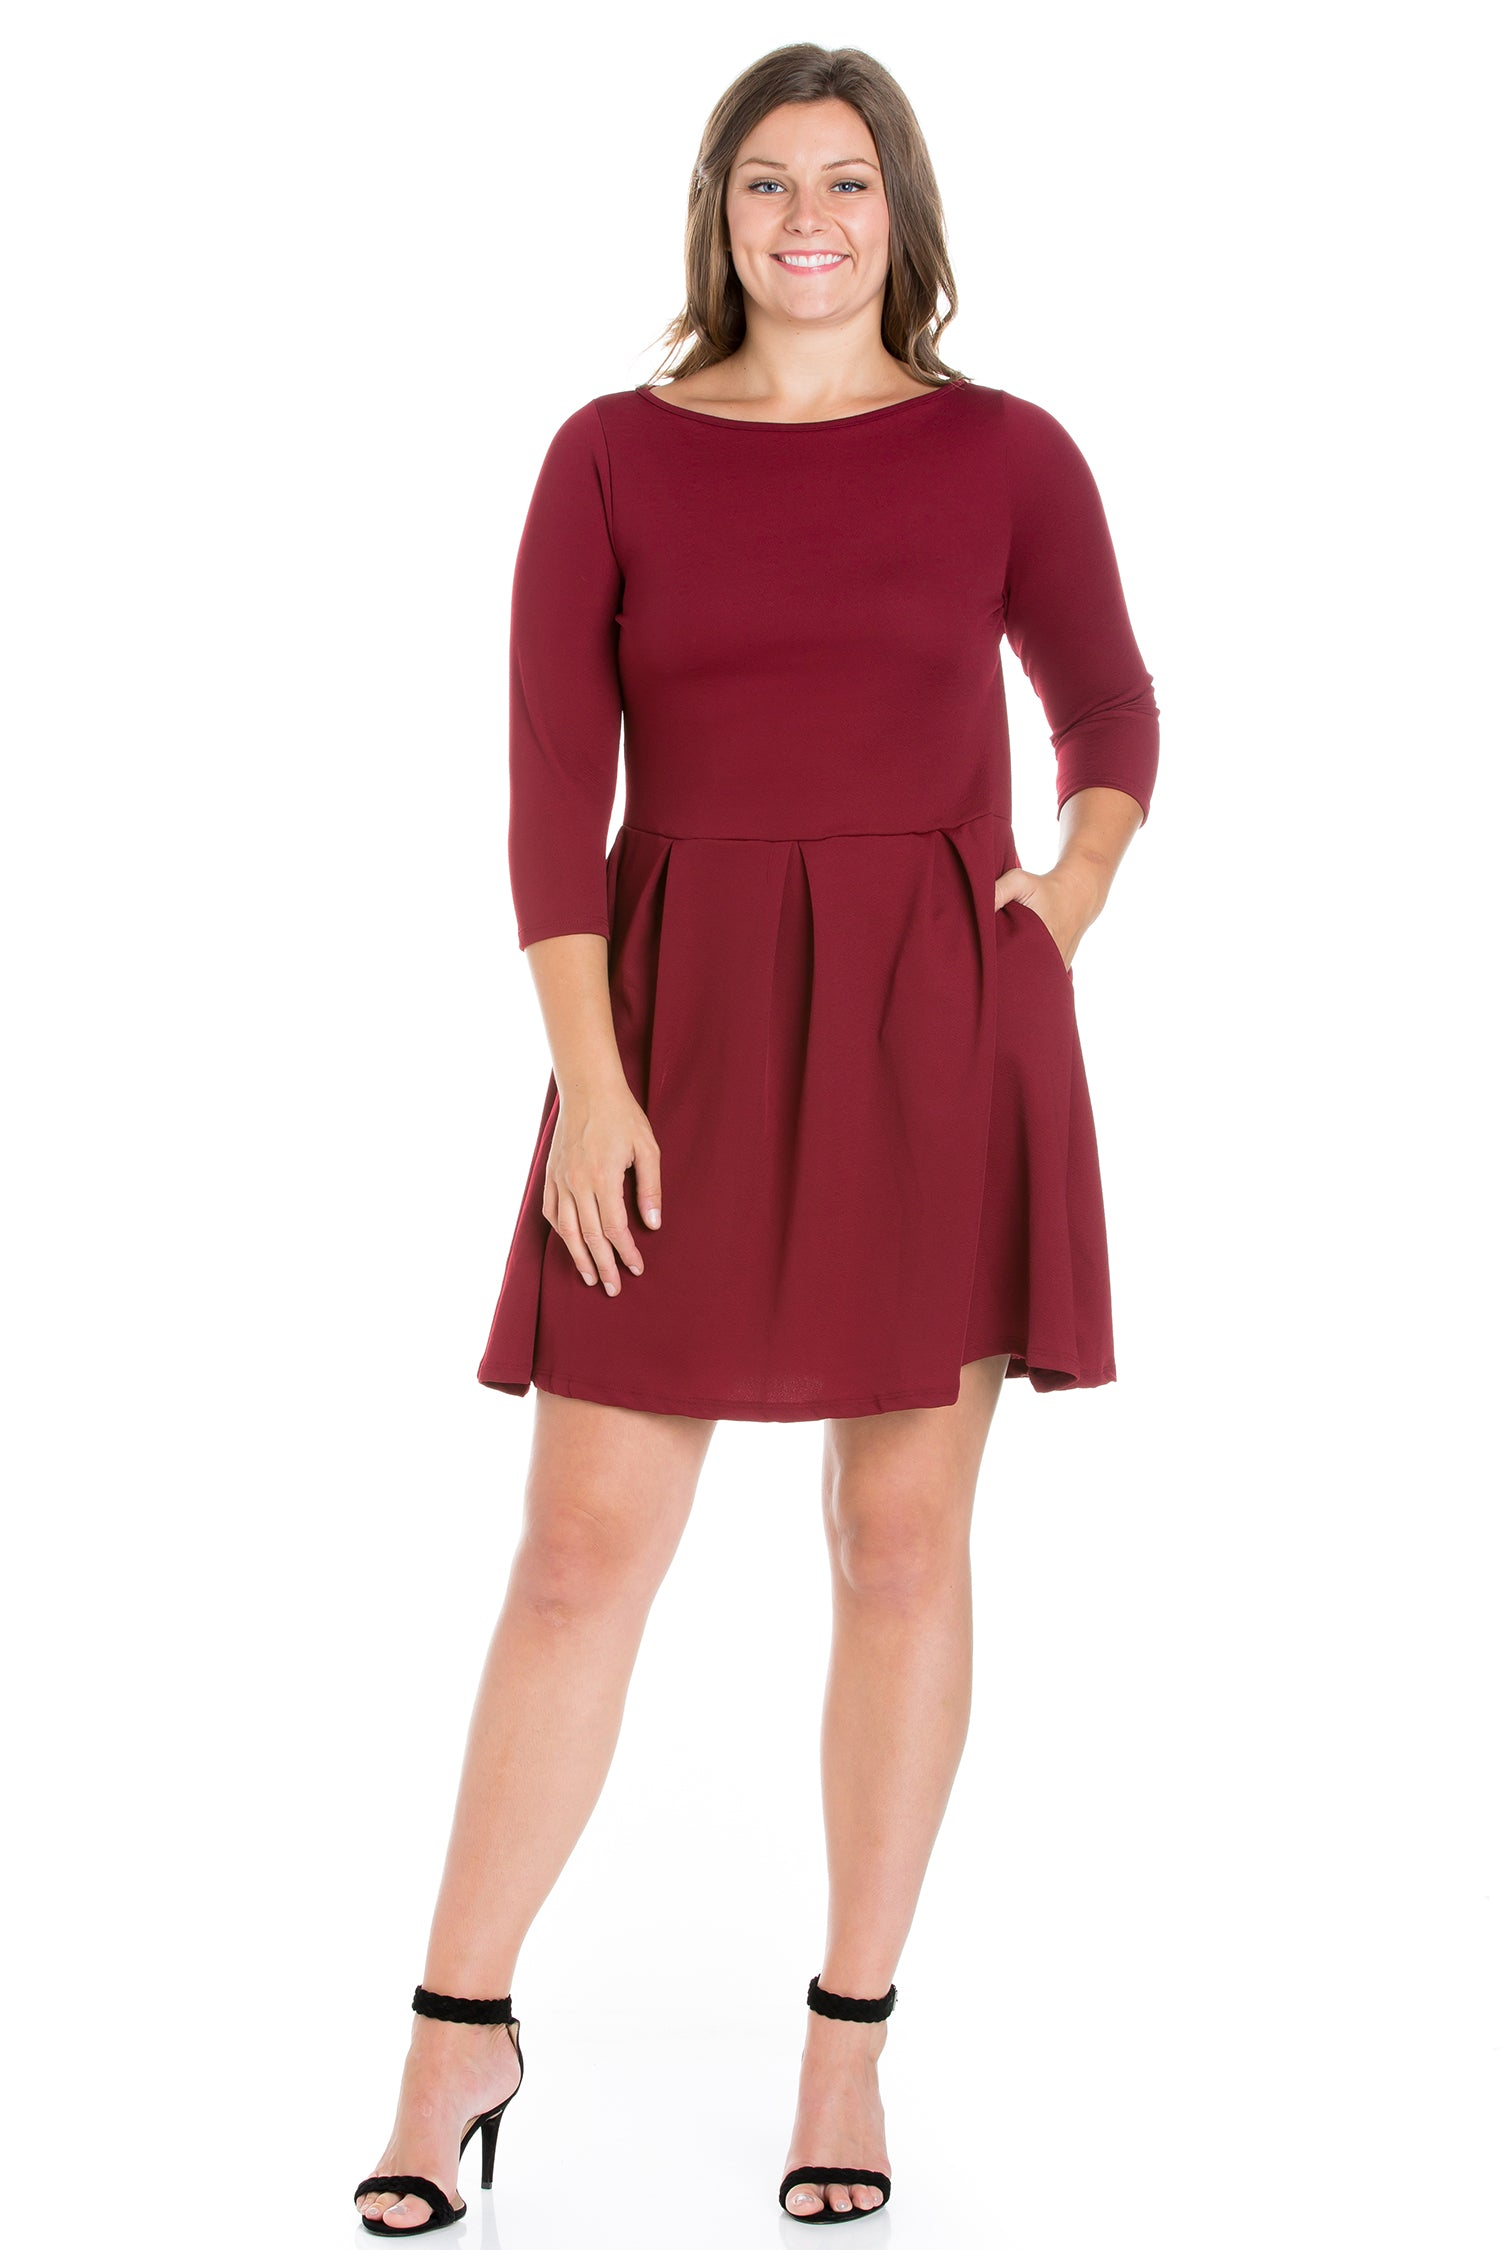 24seven Comfort Apparel Perfect Fit and Flare Plus Size Pocket Dress-DRESSES-24Seven Comfort Apparel-BURGUNDY-1X-24/7 Comfort Apparel